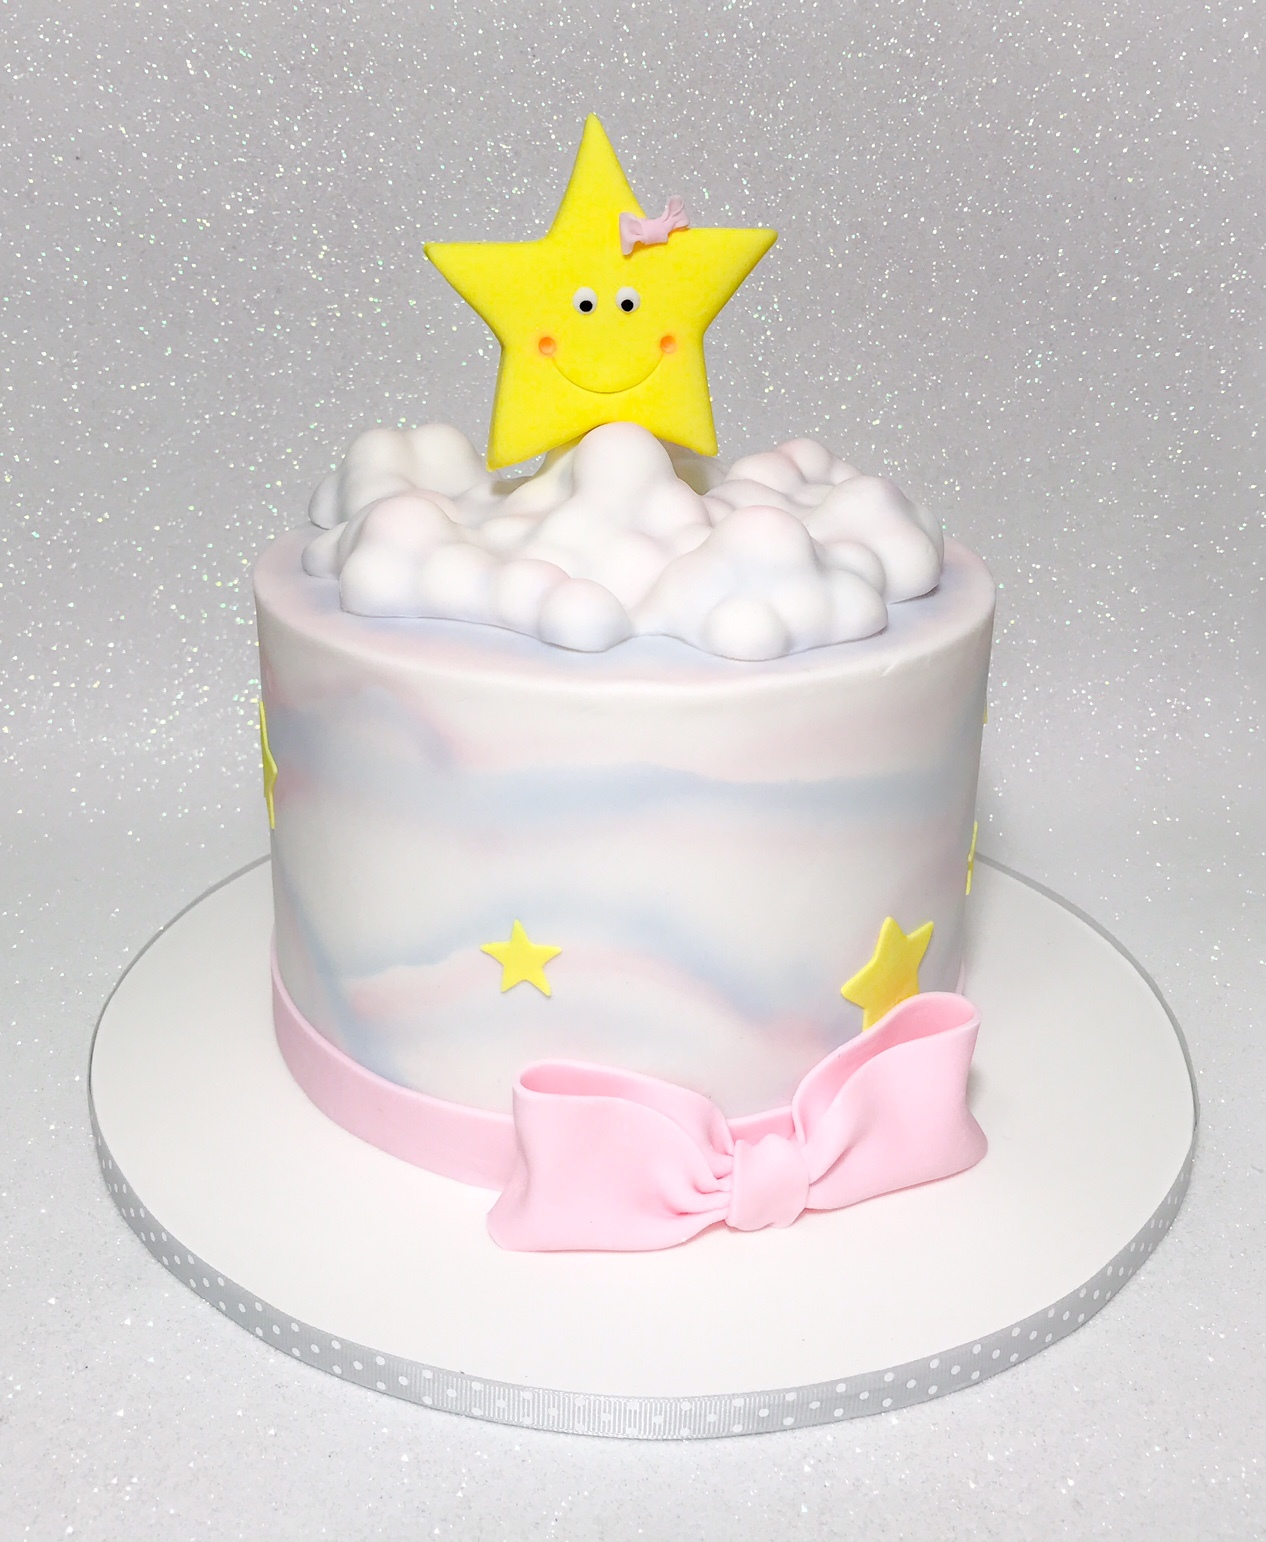 Mini star themed baby cake